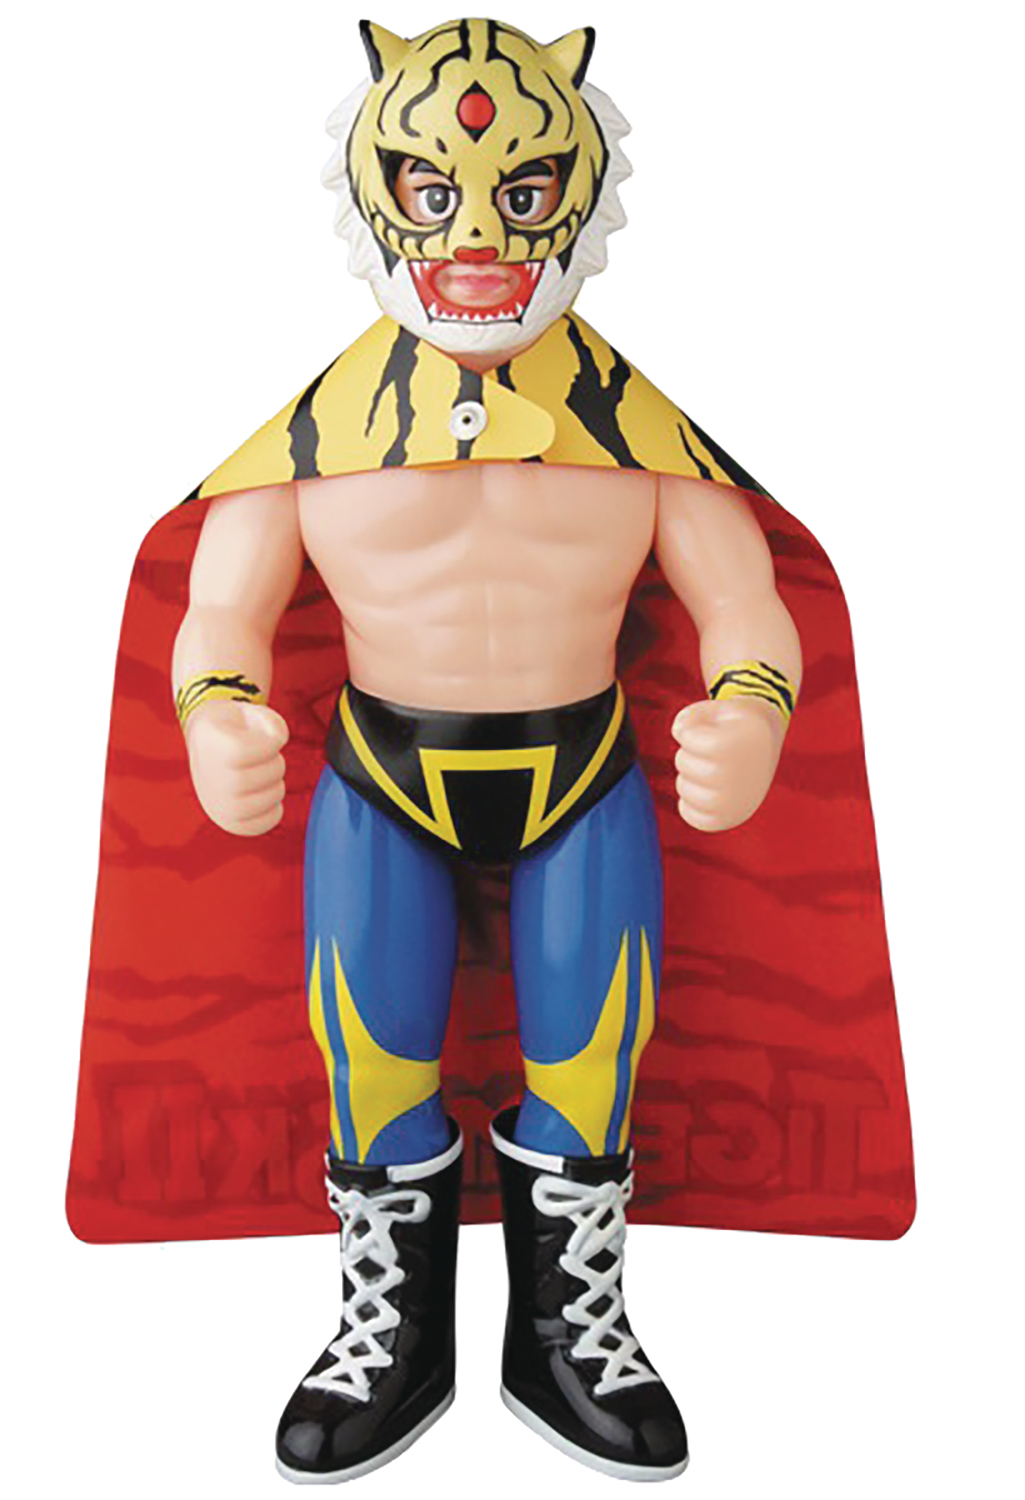 ORIGINAL TIGER MASK SOFUBI VINYL FIG PLUSH DOLL VER